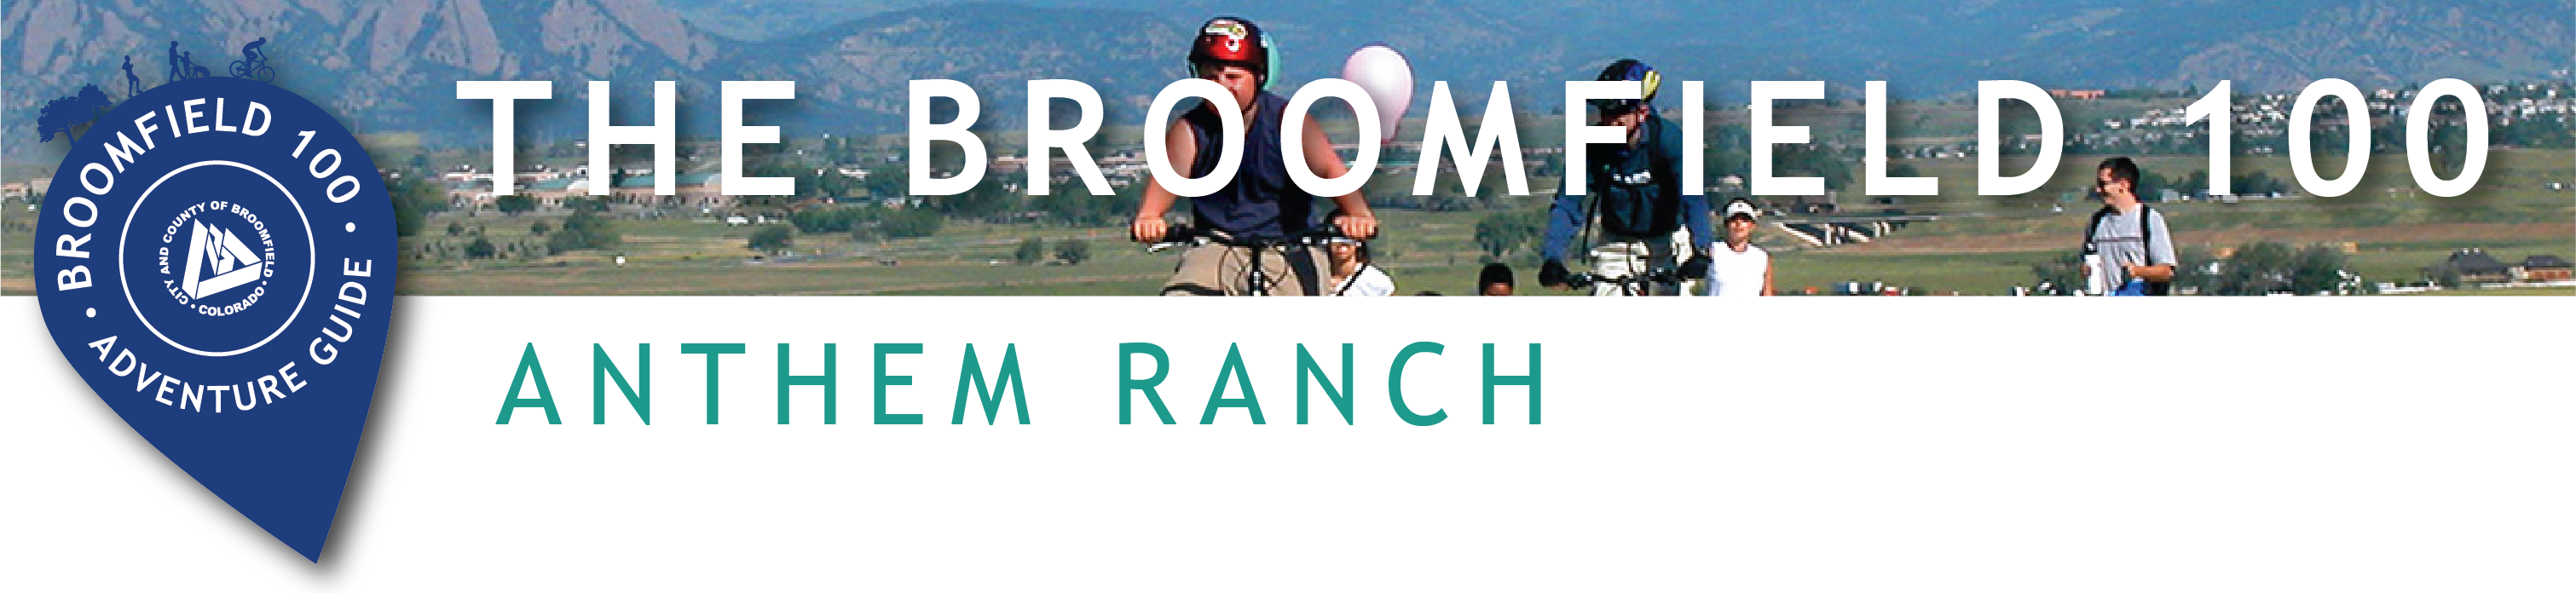 2019 Broomfield100 web banners_anthem ranch